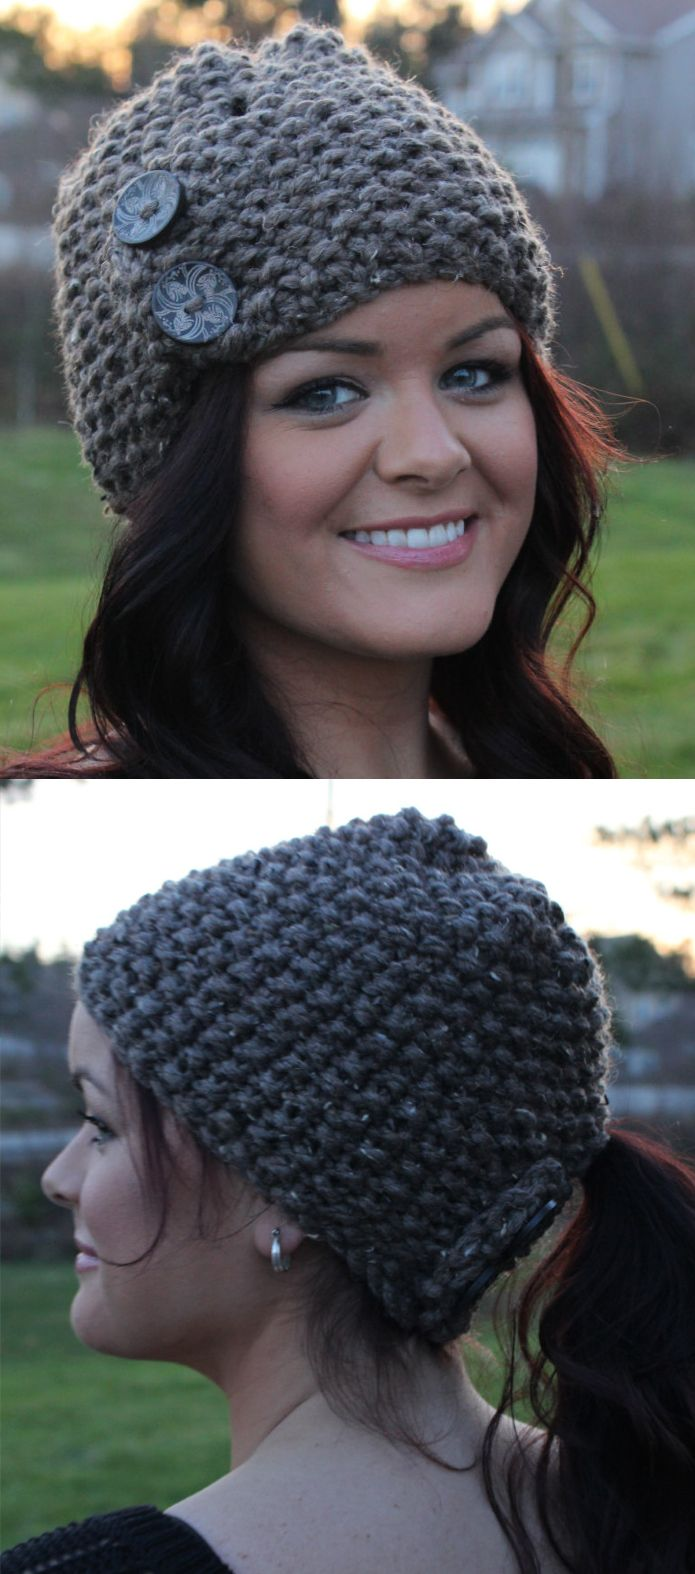 Earflap Hat Knitting Pattern Bulky Yarn : The 468 best images about Hat Knitting Patterns on ...